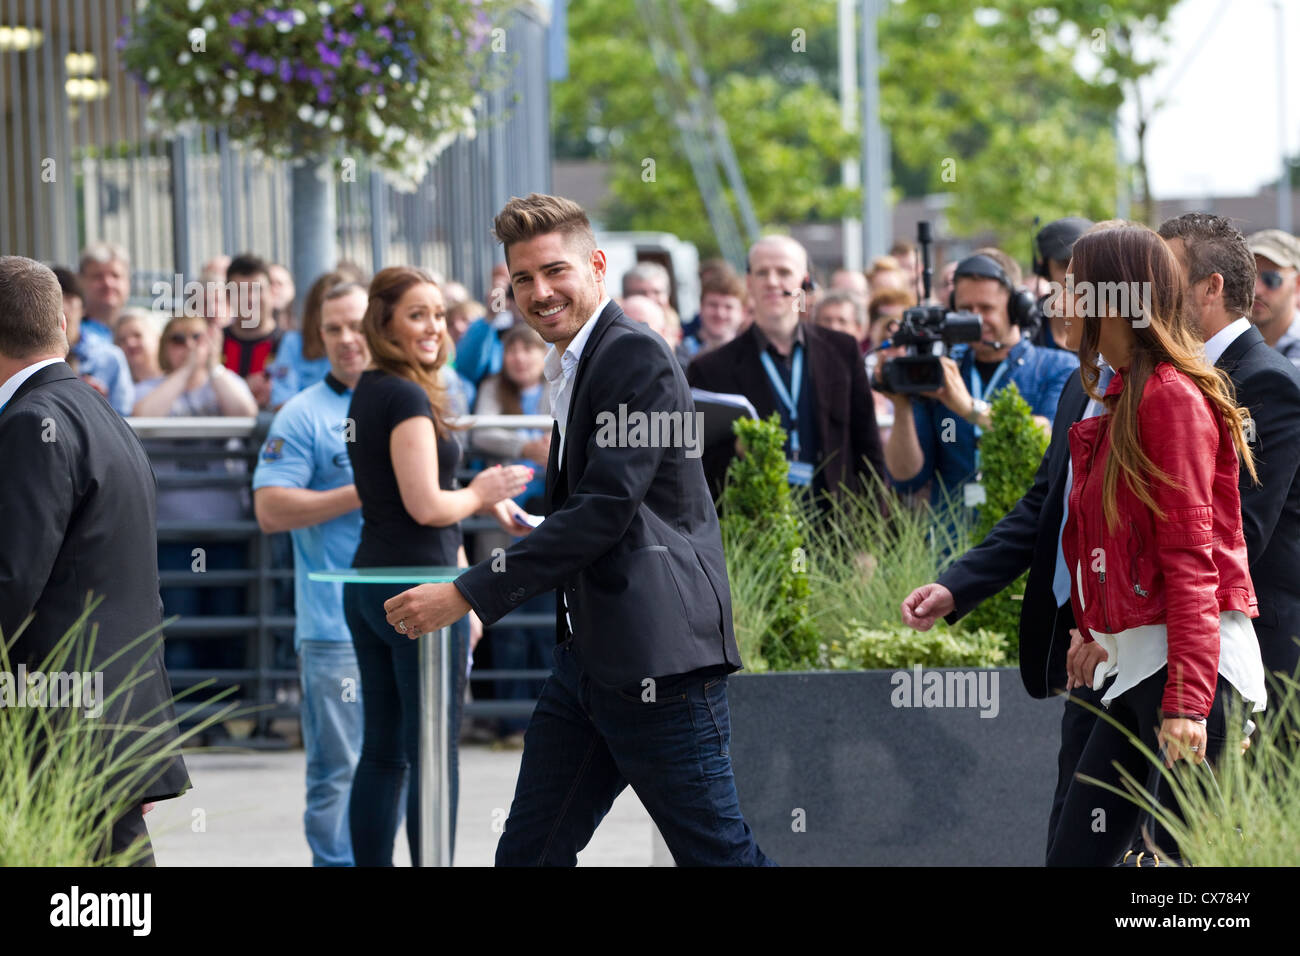 Javi Garcia footballer arriving at the Etihad Stadium, Manchester City Football Club, Manchester, England, United - Stock Image